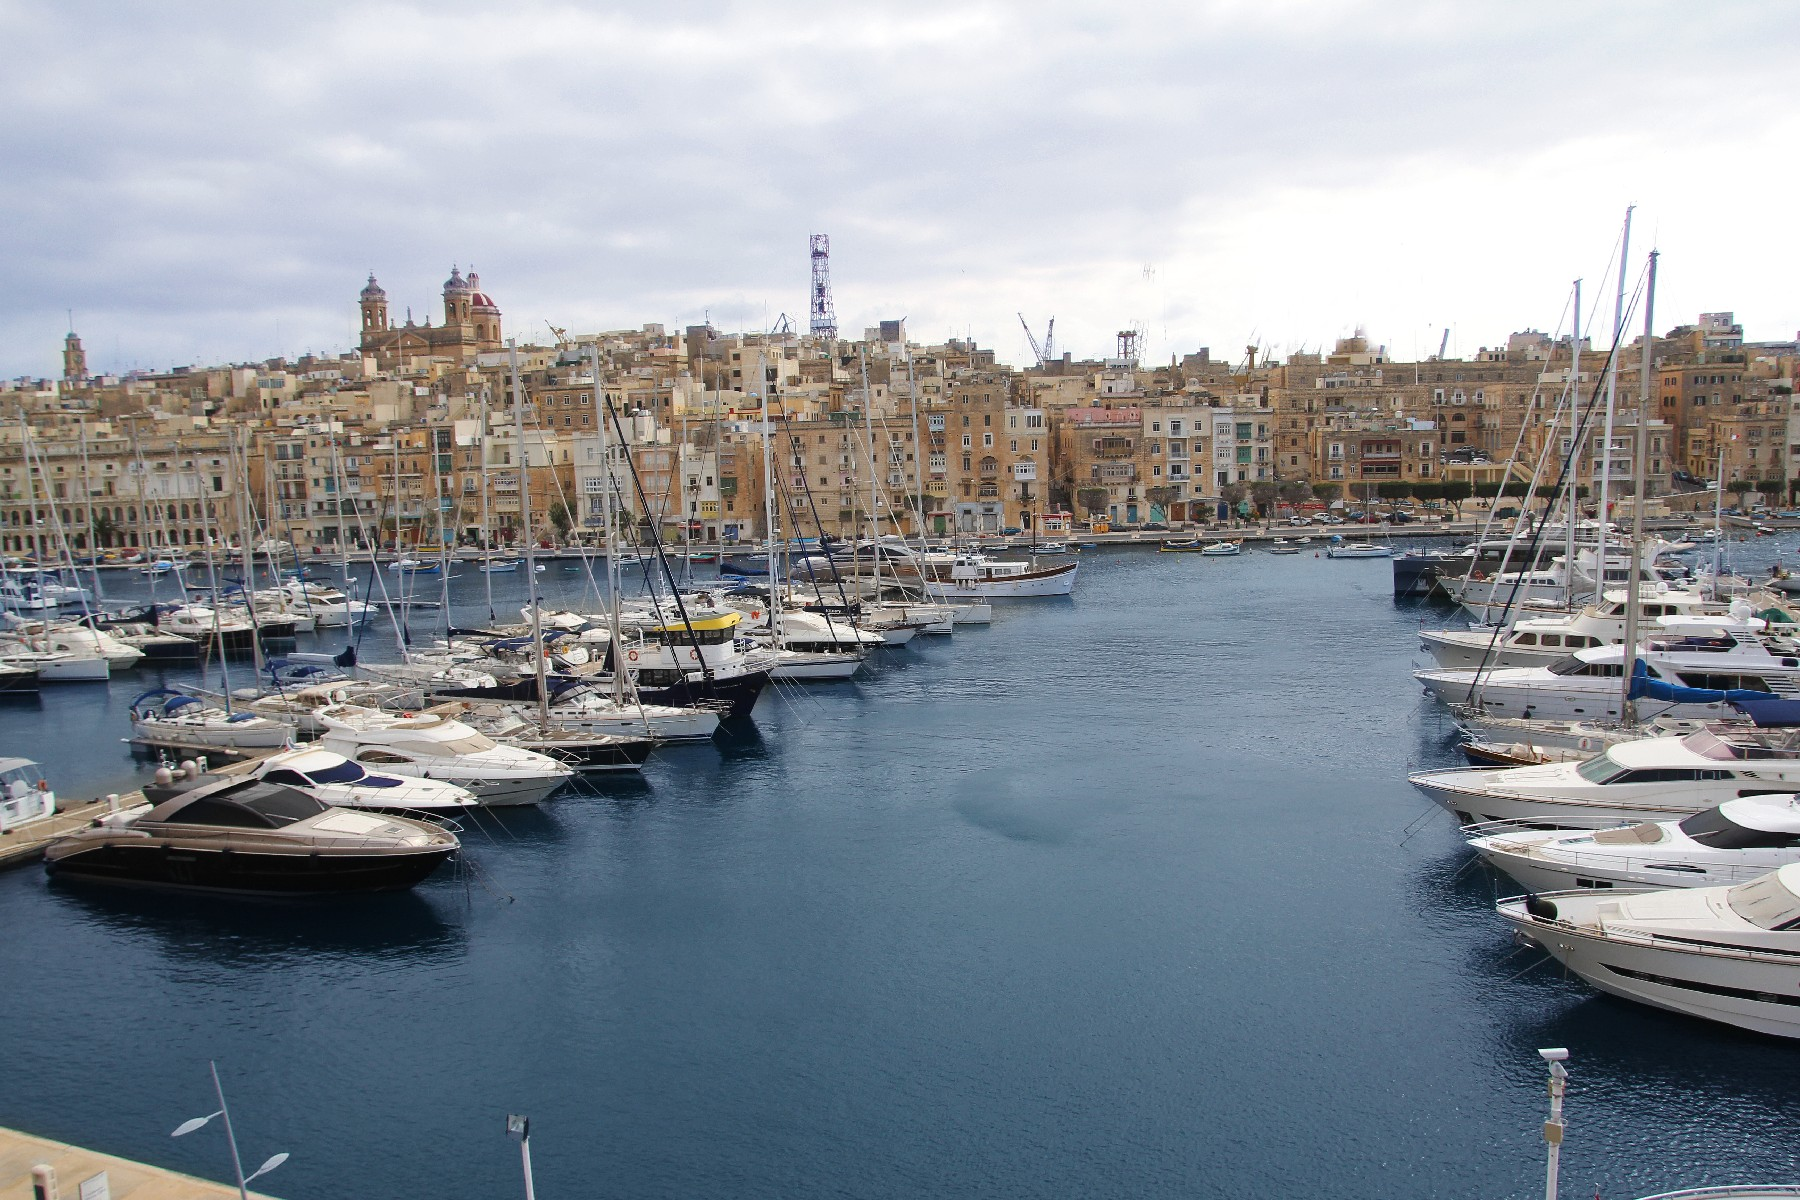 Apartment for Sale at Charming Marina Apartment Other Malta, Cities In Malta Malta